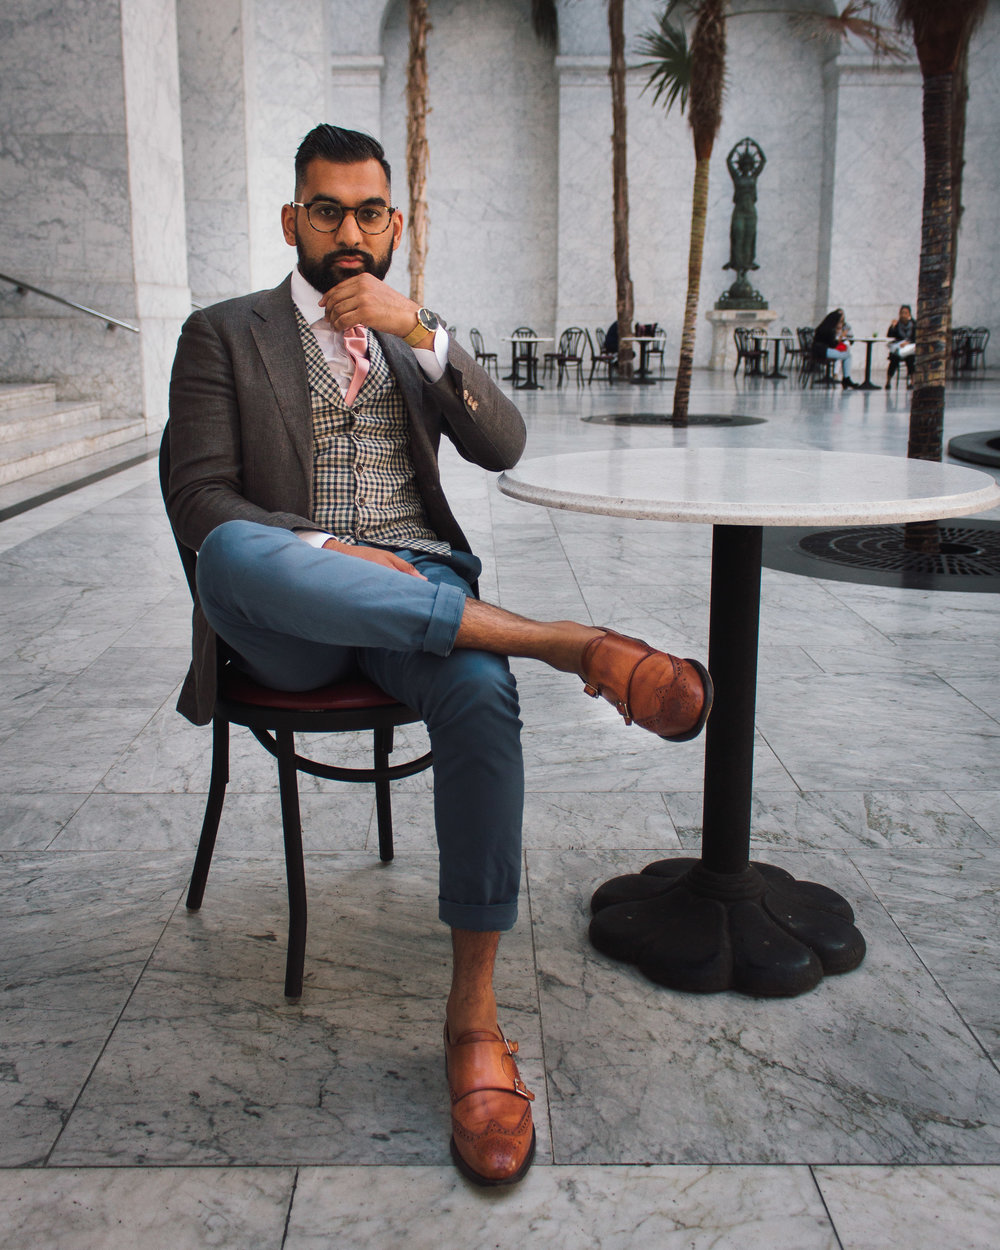 Mix the blazer up with different pants and different shoes